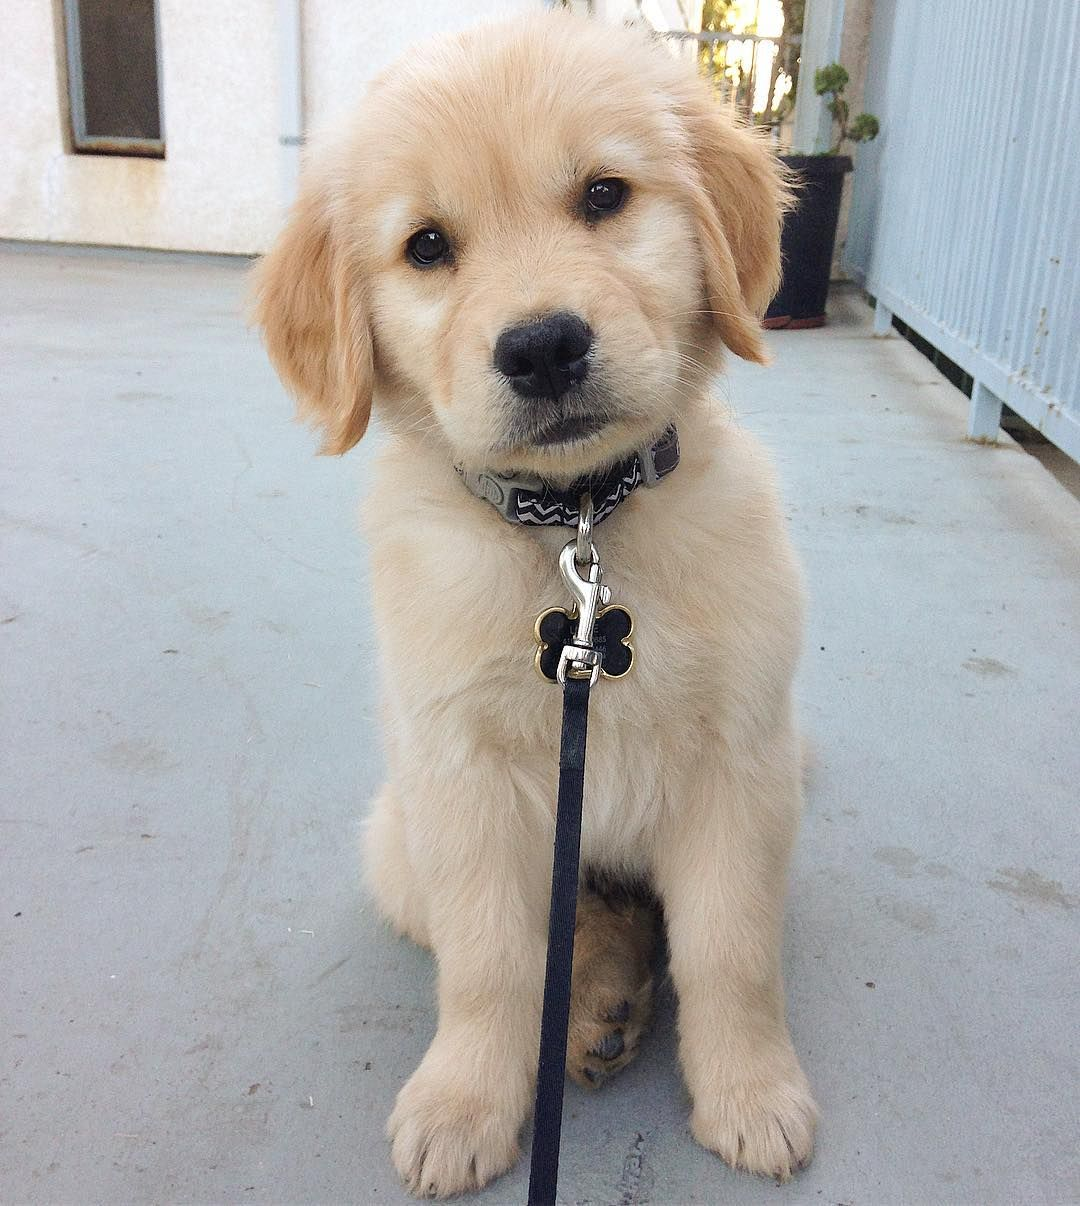 Louie The Golden Retriever On Instagram All About The Head